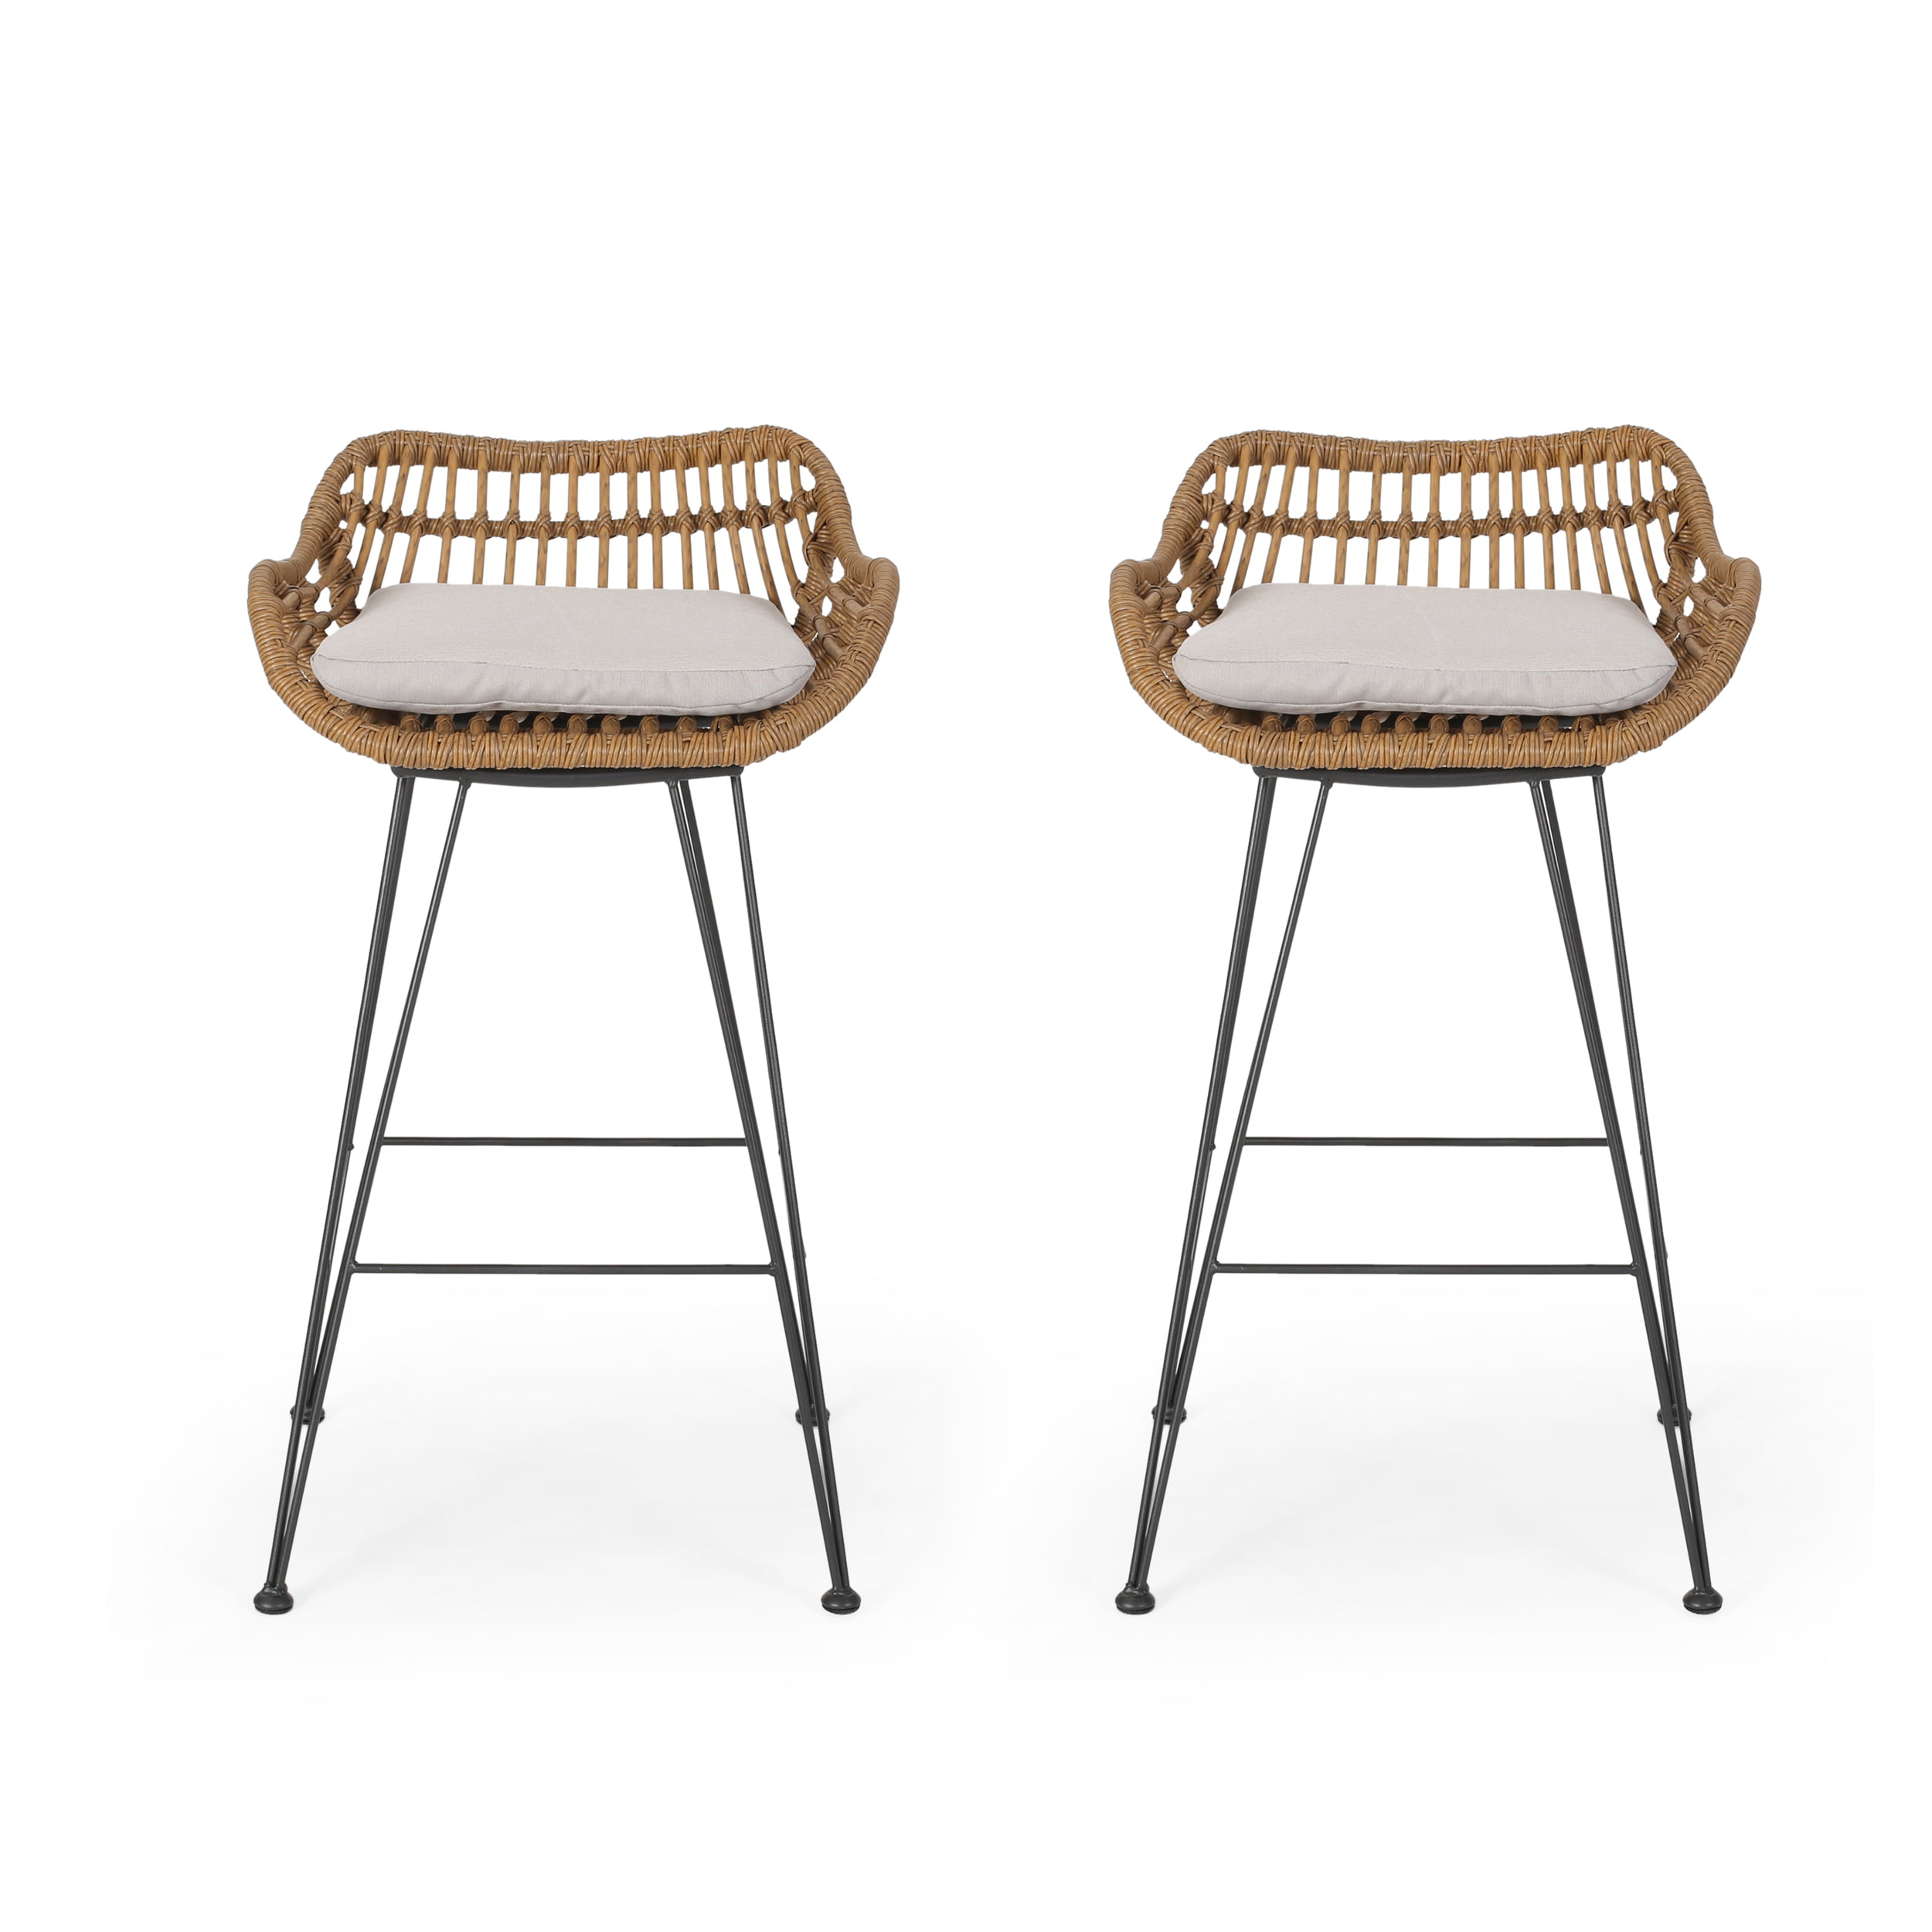 Image of: Lisa Outdoor Wicker Barstools With Cushions Set Of 2 Light Brown And Beige Walmart Com Walmart Com